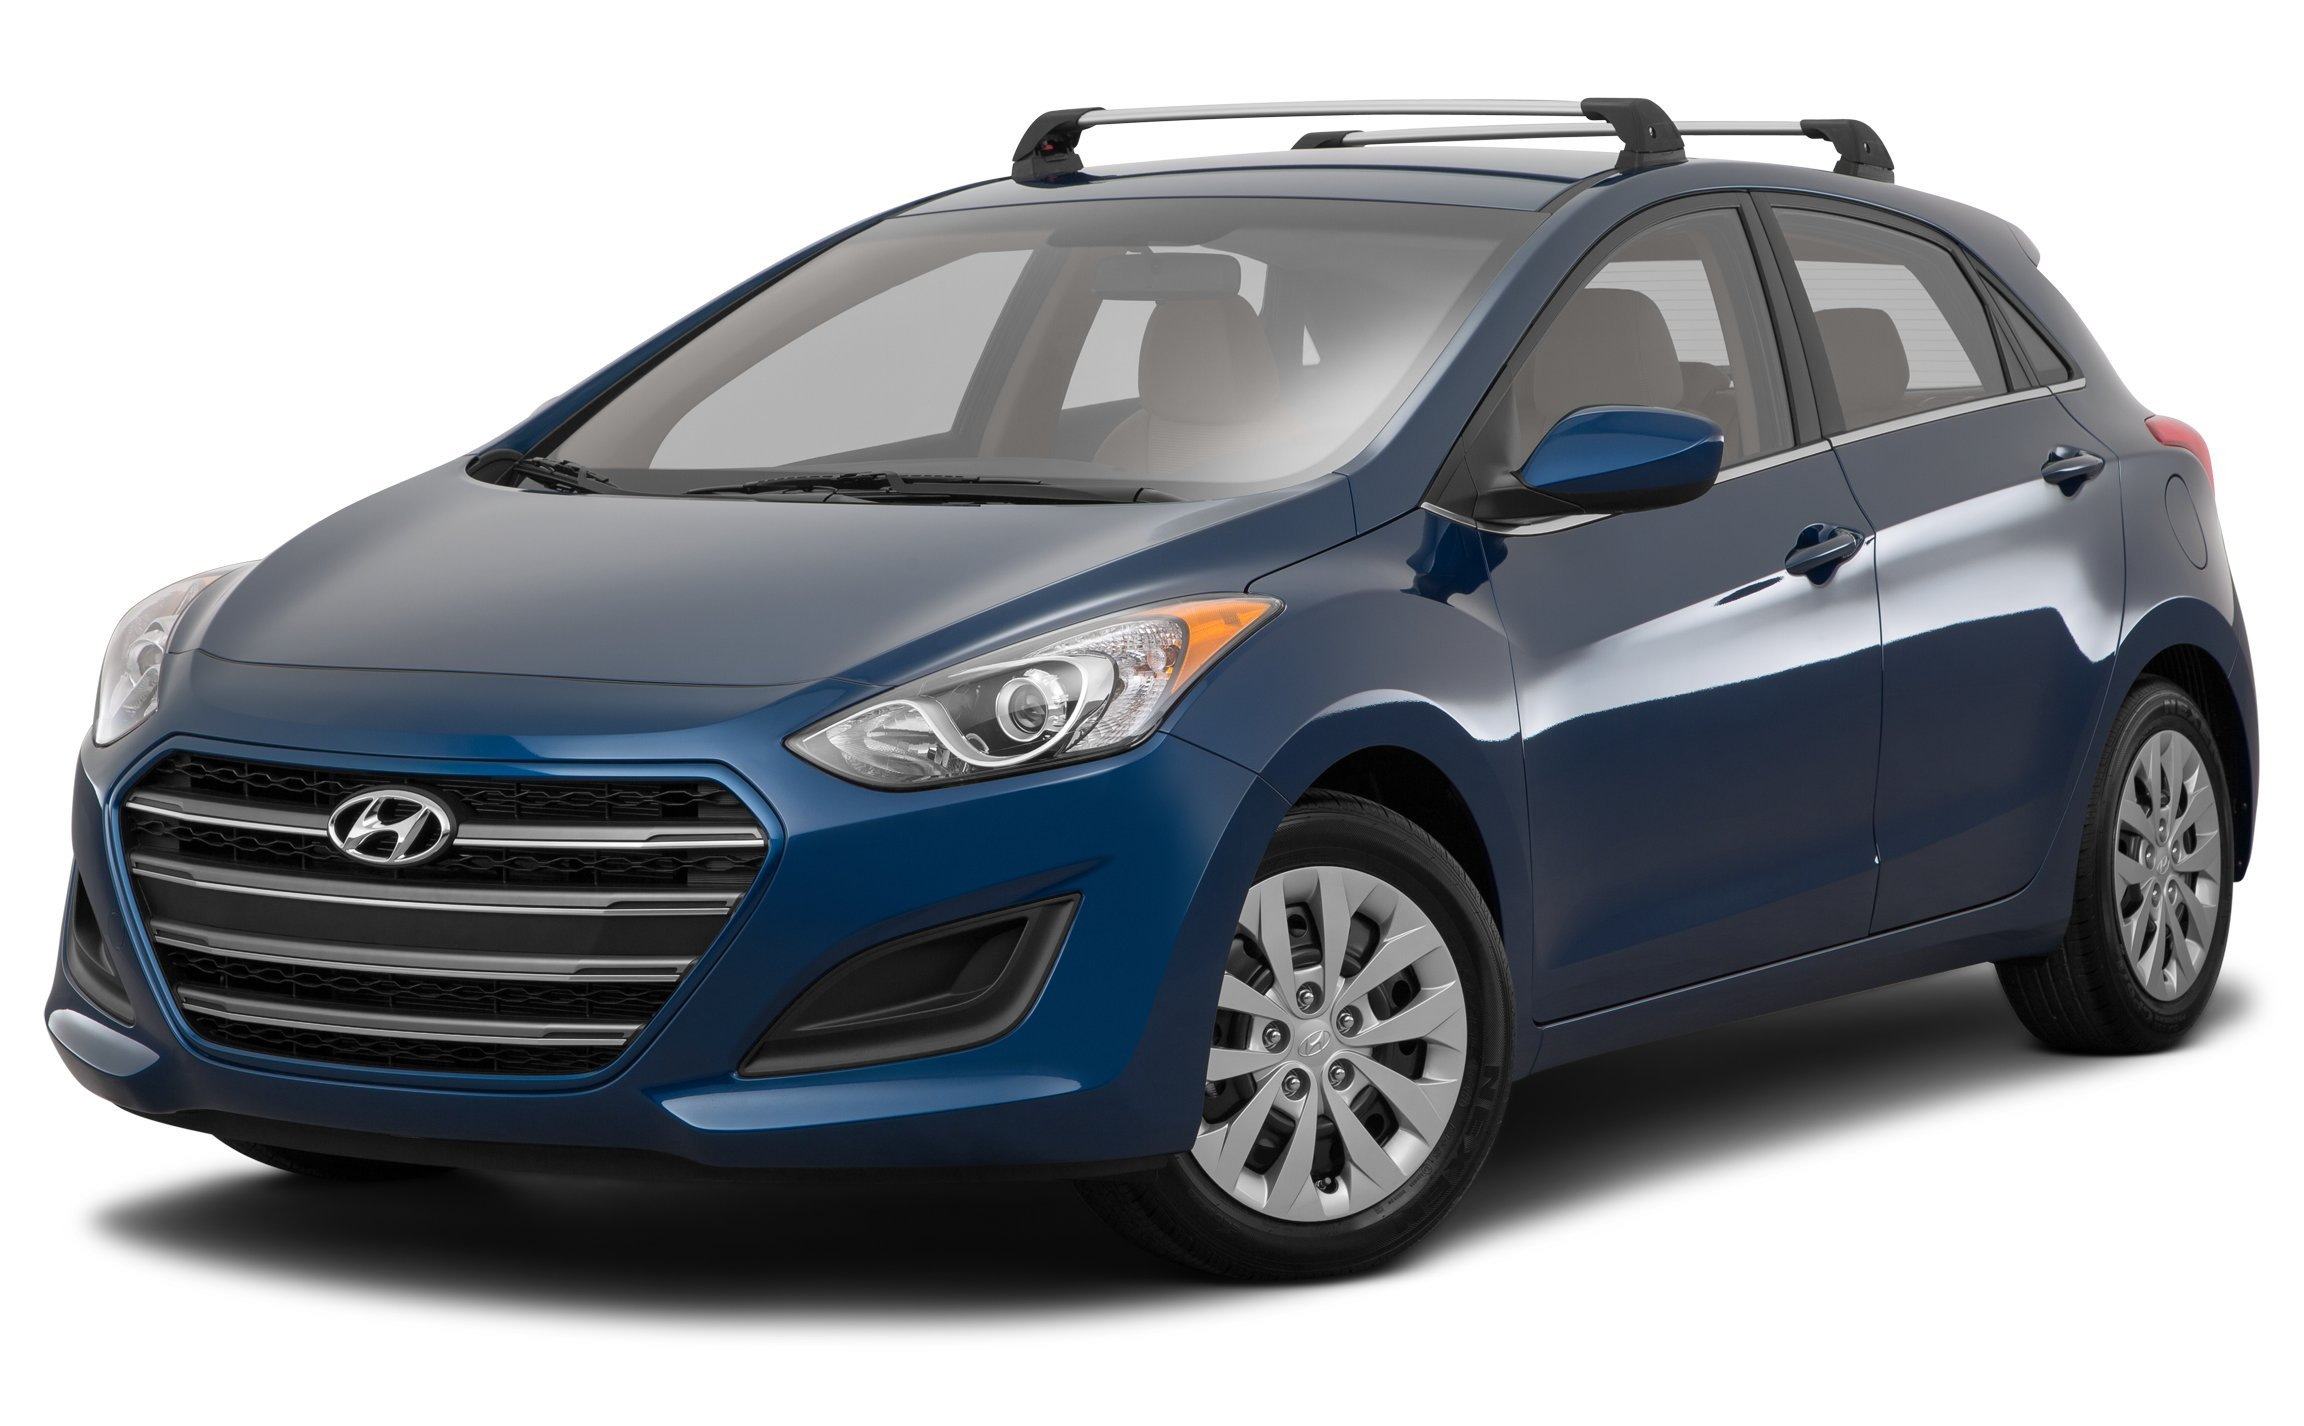 2016 hyundai elantra gt reviews images and. Black Bedroom Furniture Sets. Home Design Ideas